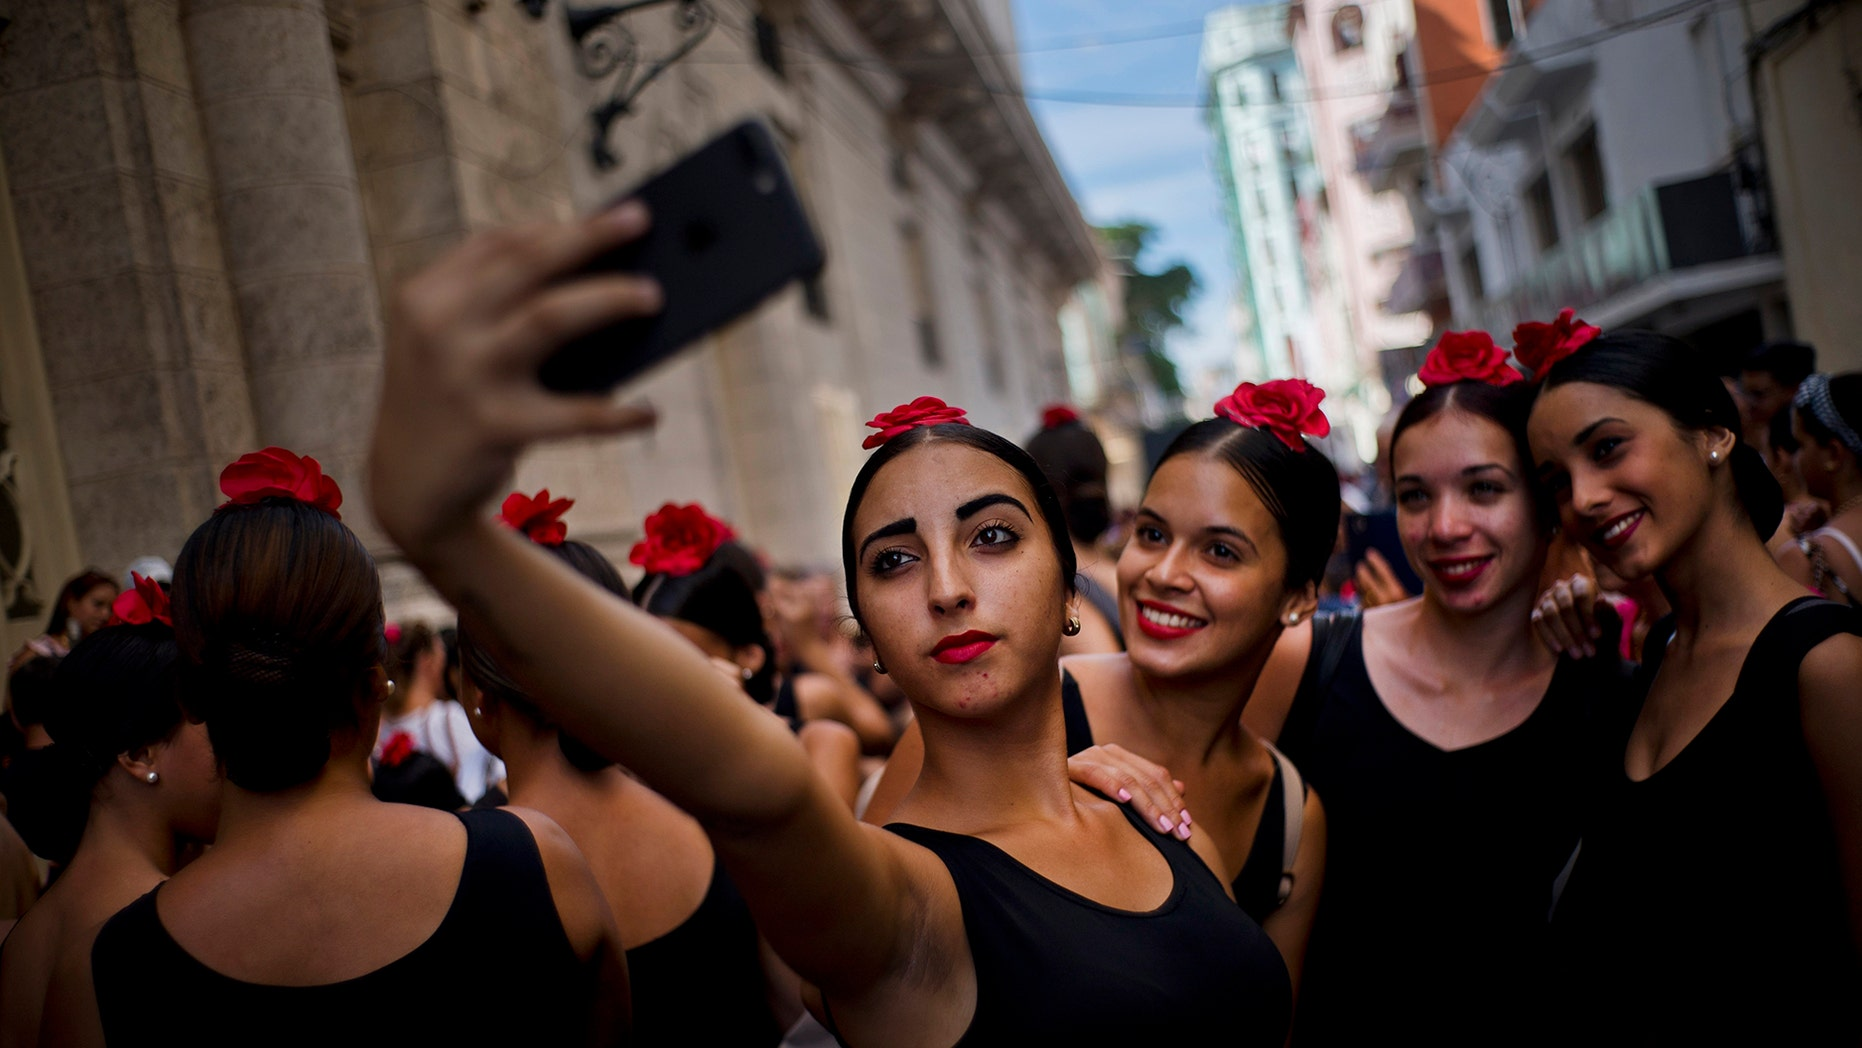 Young flamenco dancers take a selfie before performing in the street during the 26th International Ballet Festival in Havana, Cuba, Sunday, Nov. 4, 2018. (Associated Press)